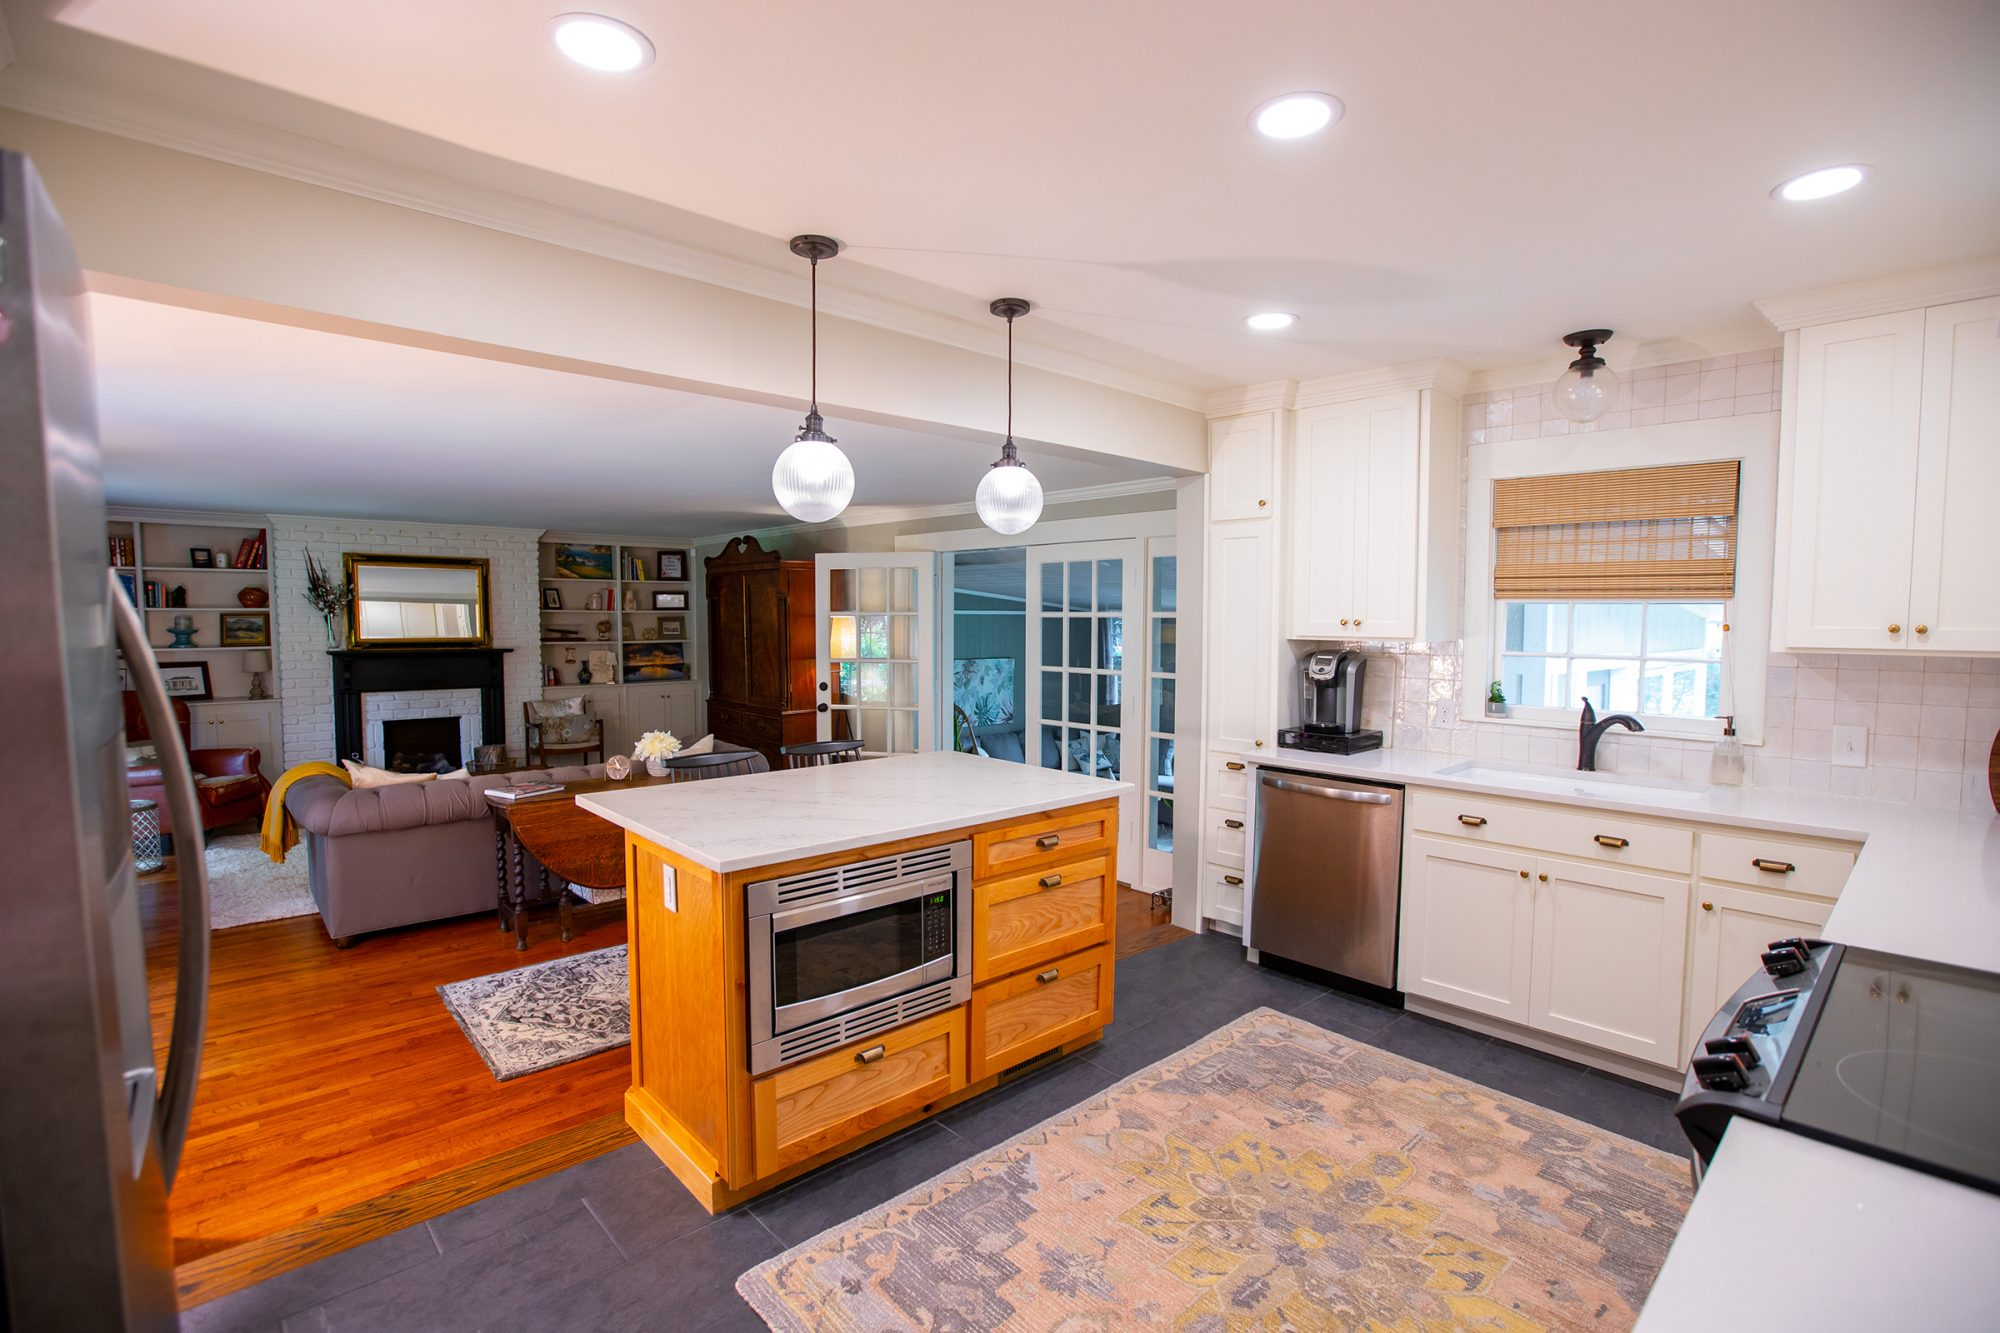 House from HGTV's Home Town on Sale